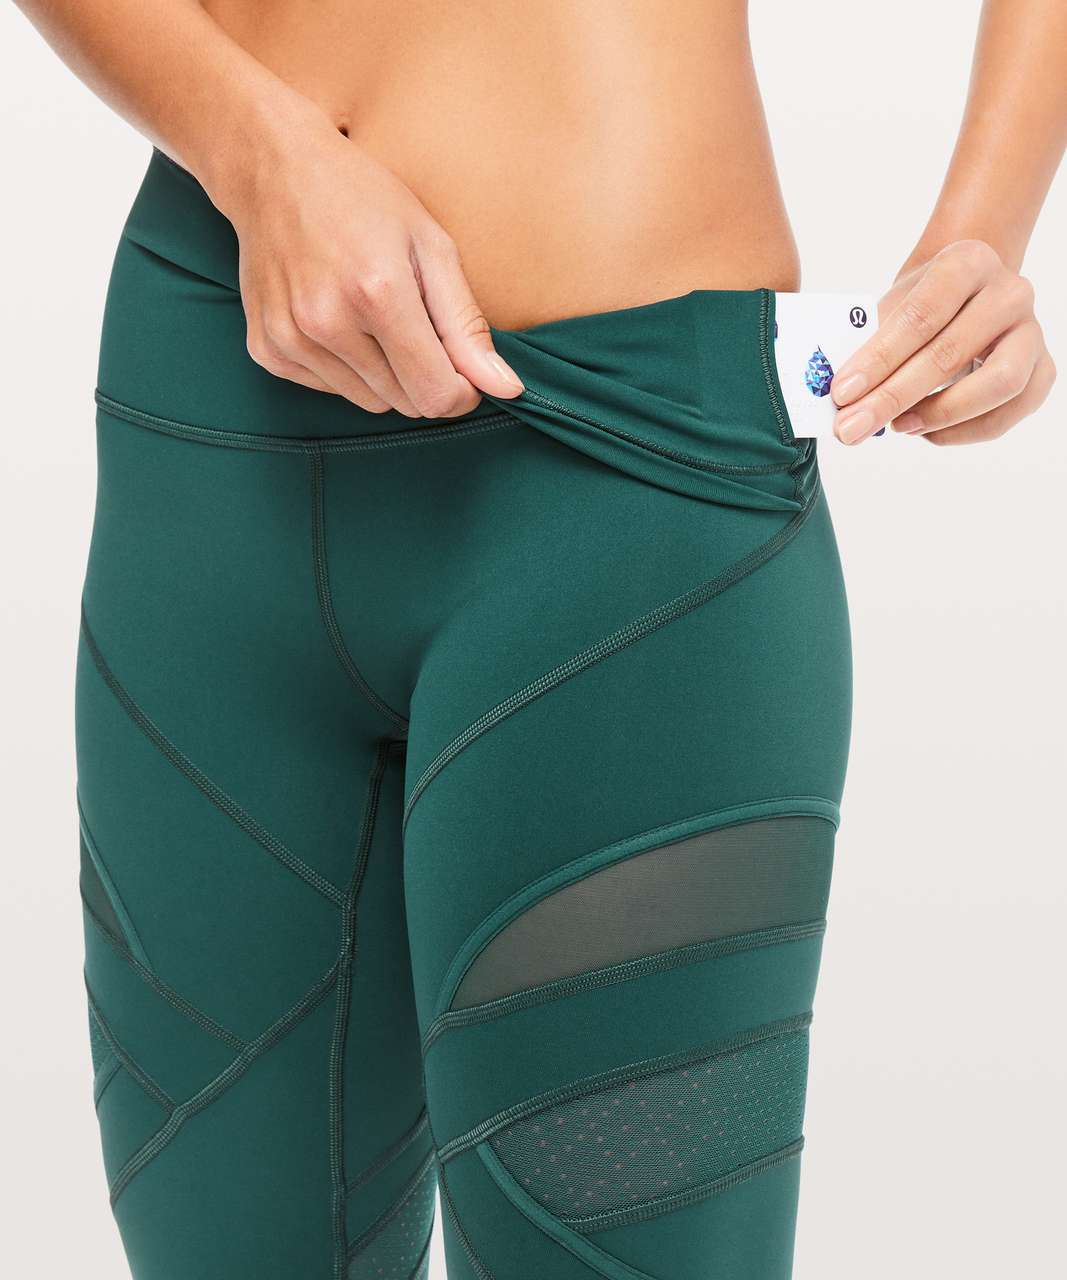 "Lululemon Wunder Under High-Rise Tight *Mesh 28"" - Royal Emerald"